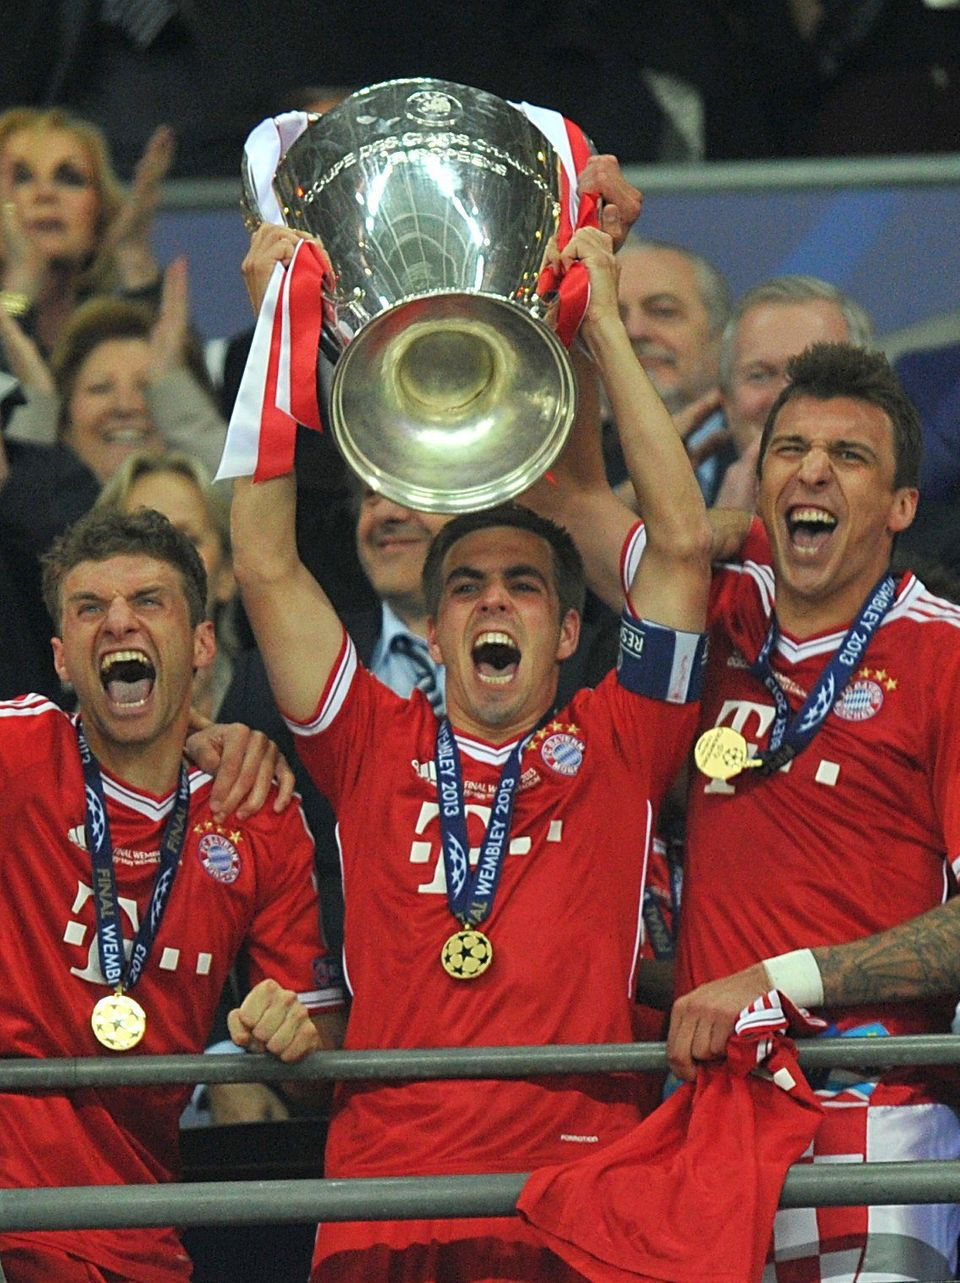 Bayern Munich's Philipp Lahm lifts the UEFA Champions League trophy